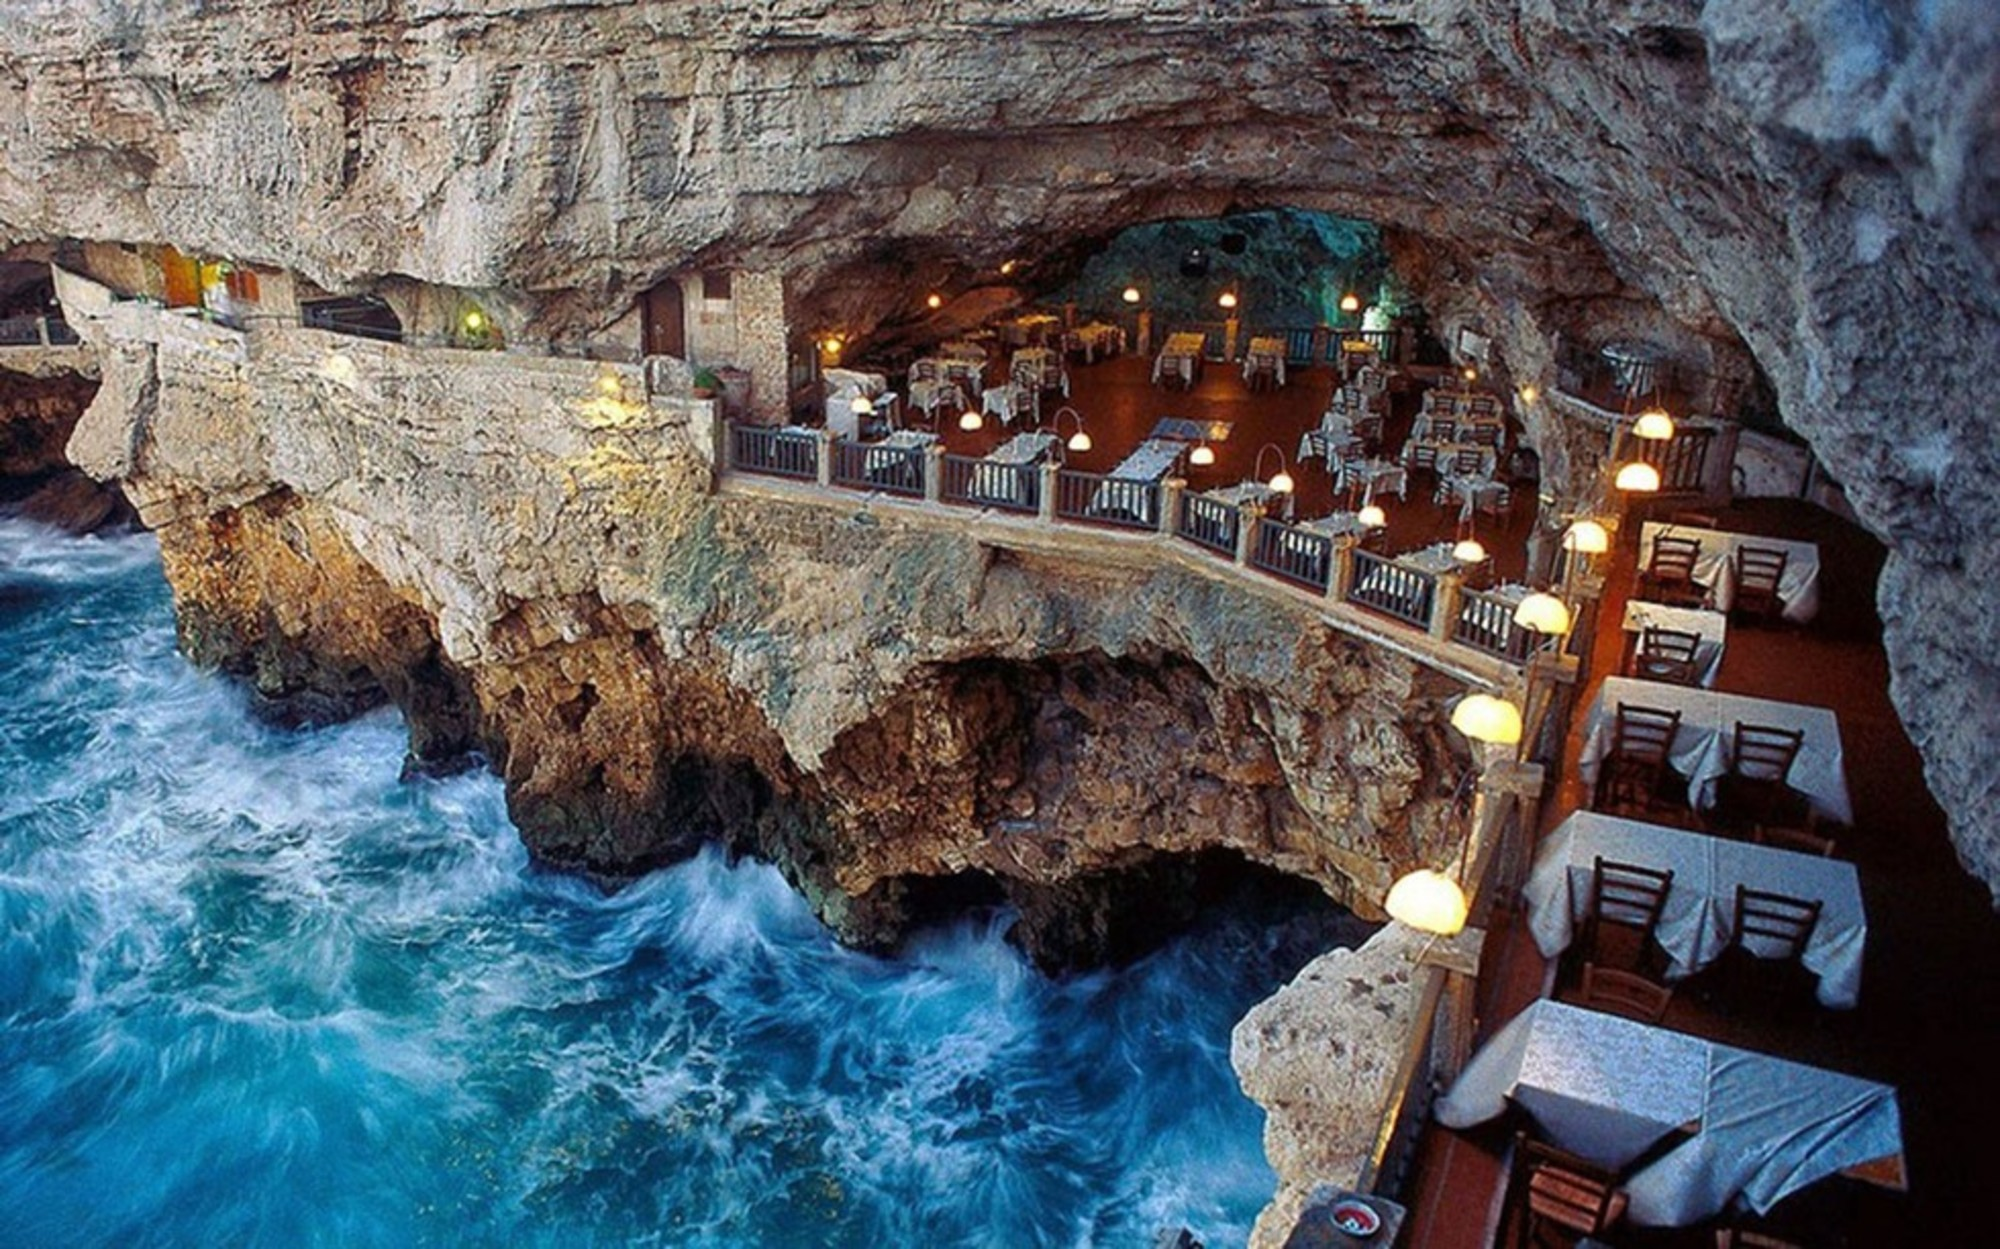 Luxury restaurants: an unforgettable experience inside a cave most beautiful hotel lobbies Most Beautiful Hotel Lobbies In The World Luxury restaurants an unforgettable experience inside a cave most beautiful hotel lobbies Most Beautiful Hotel Lobbies In The World Luxury restaurants an unforgettable experience inside a cave